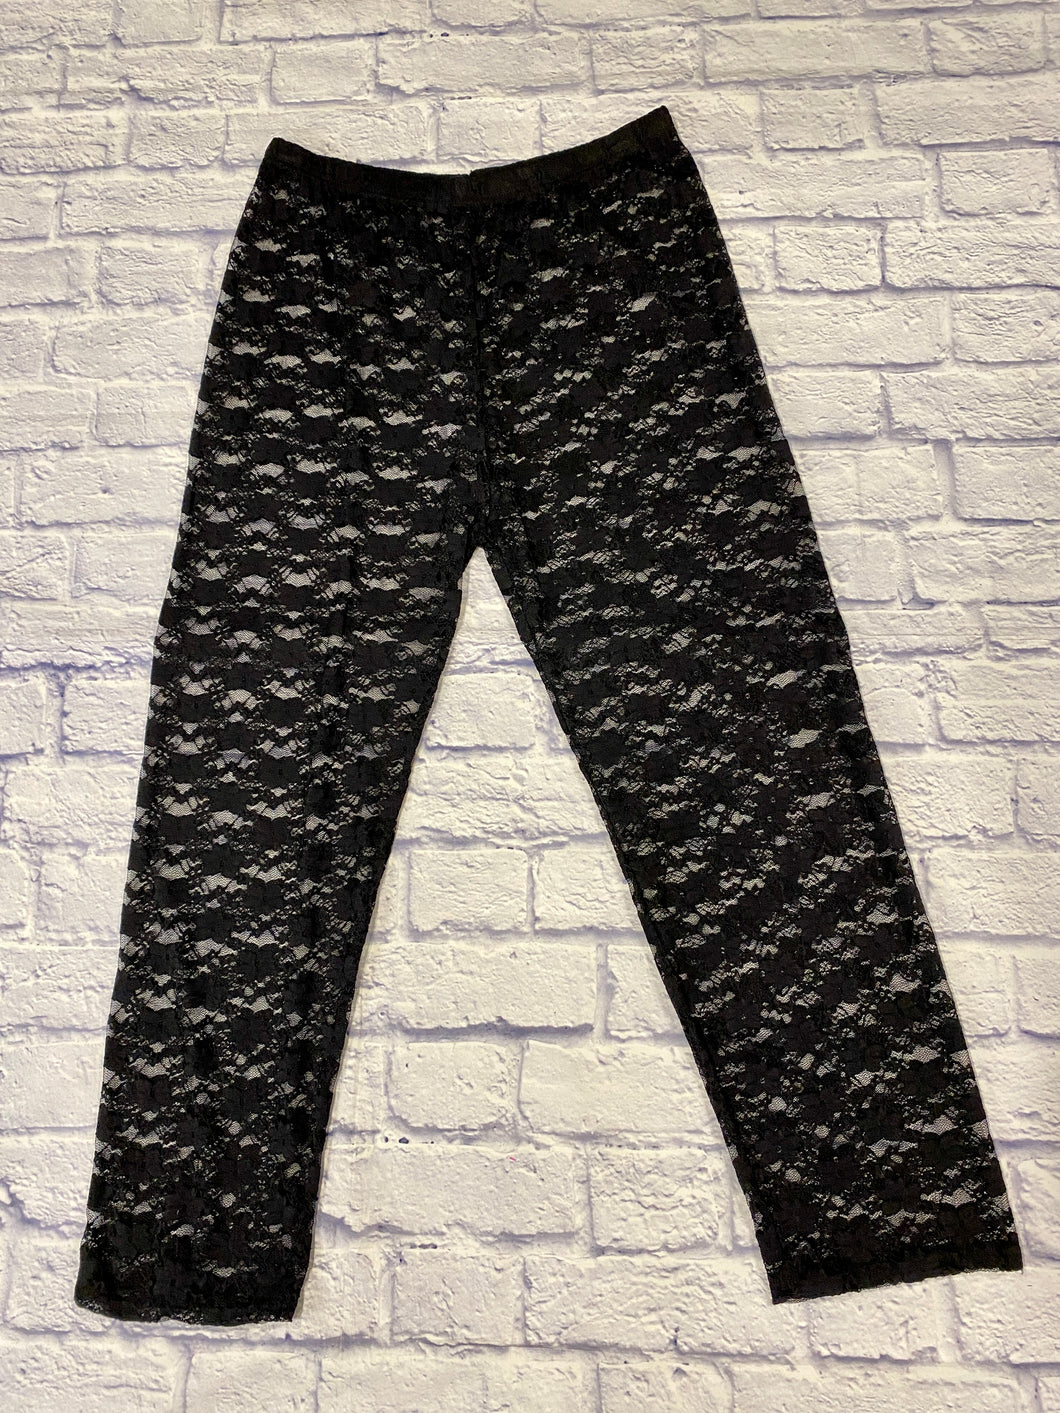 Black lace leggings with elastic waistband.  Sheer, delicate lace.